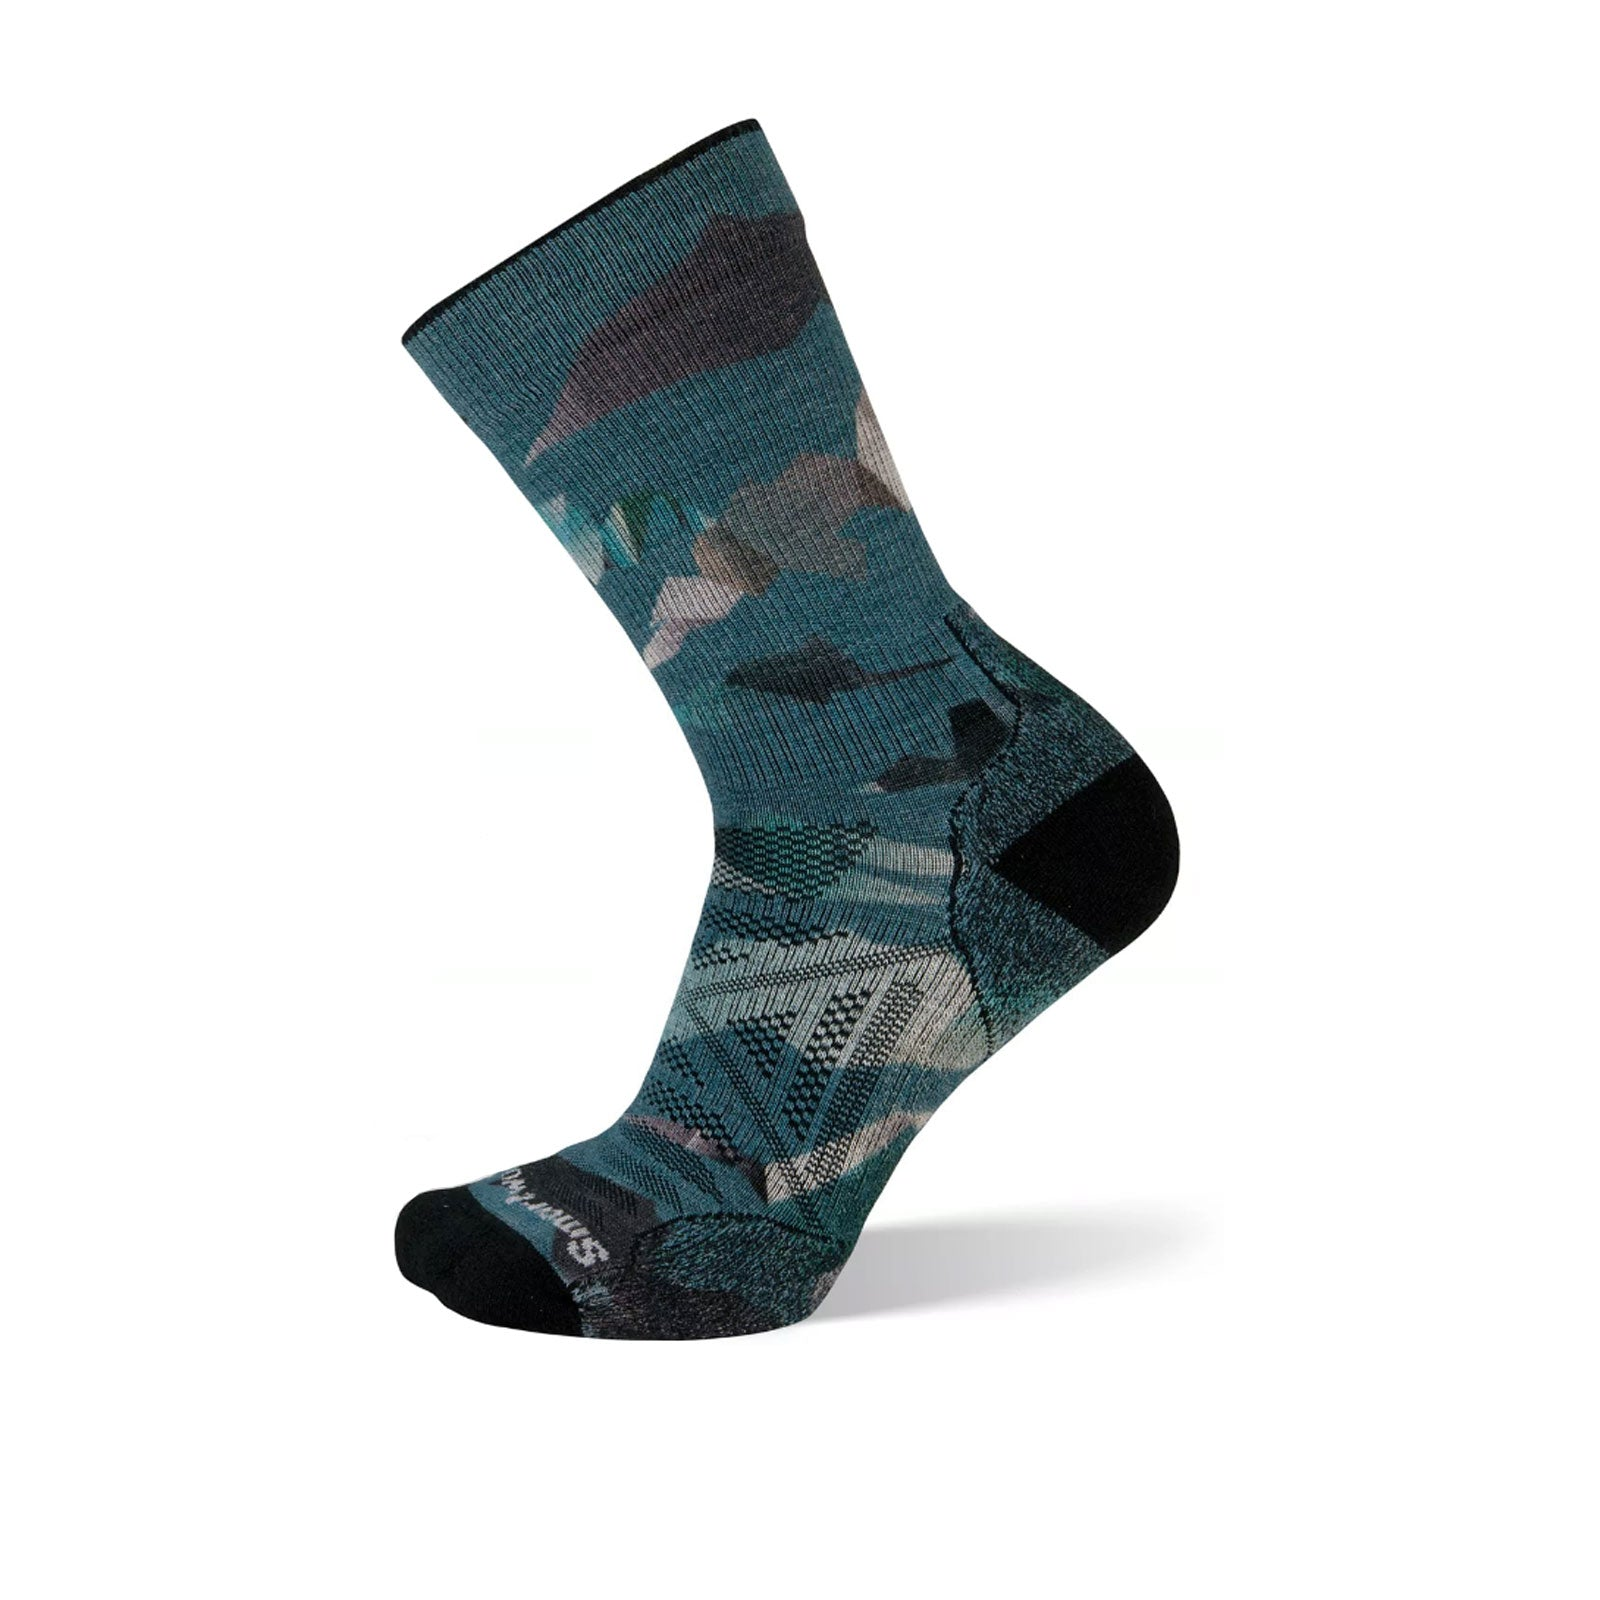 Smartwool PhD Outdoor Light Mountain (Men) - Frosty Green Socks - Life - Crew - The Heel Shoe Fitters